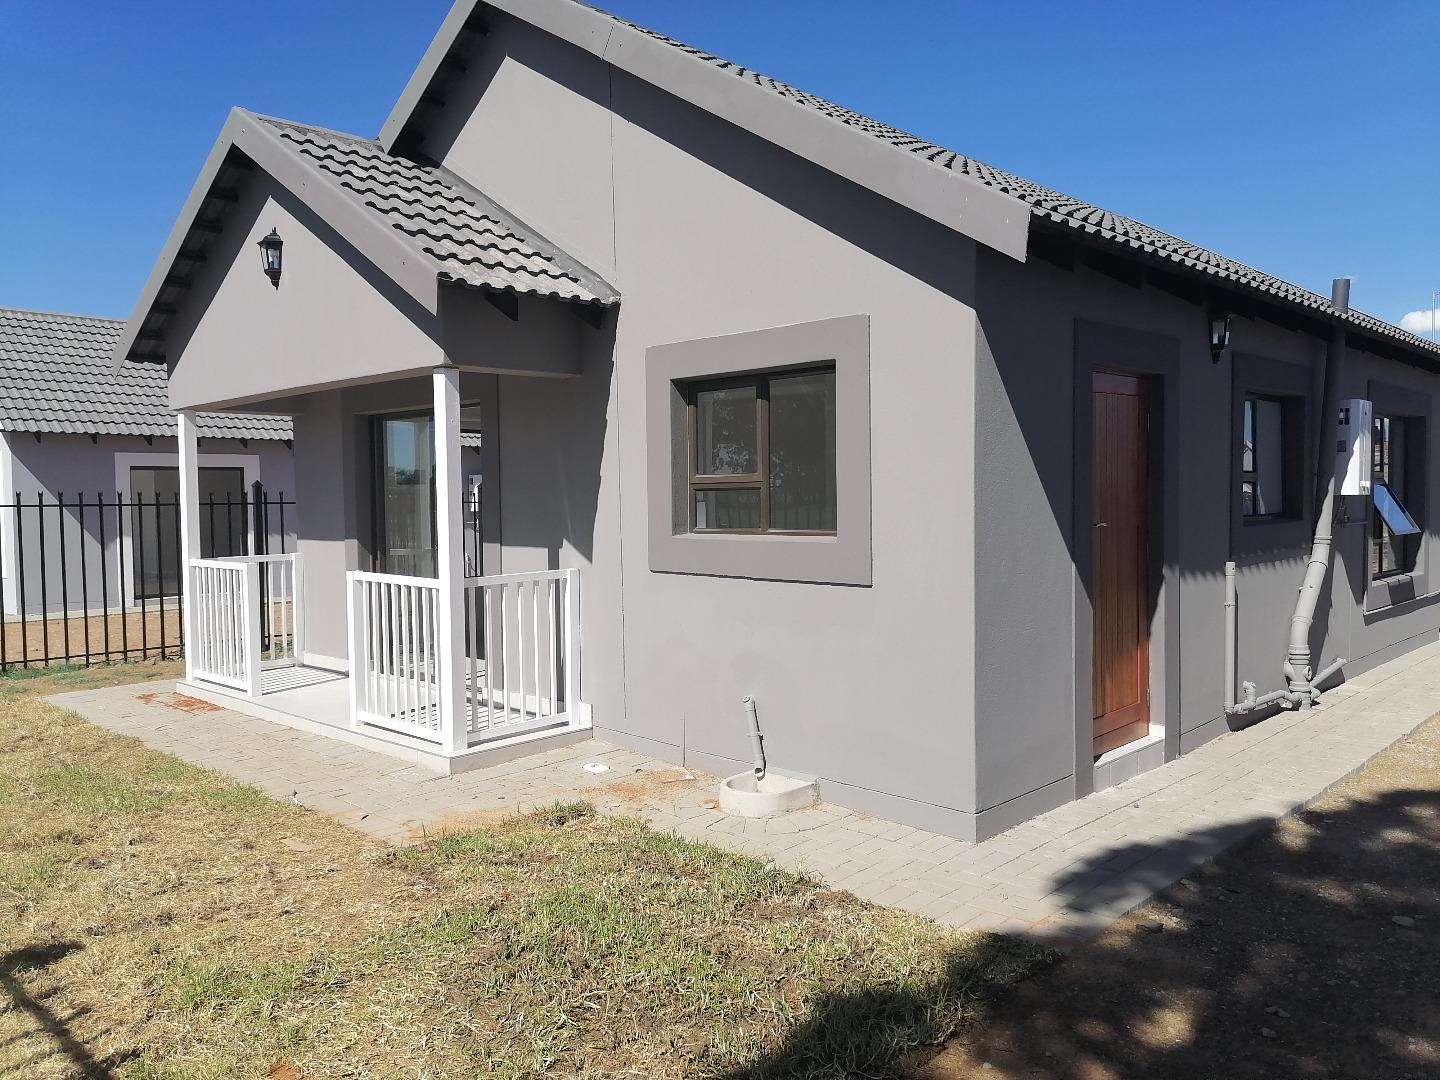 House for Sale in Grasslands, Bloemfontein - Free State